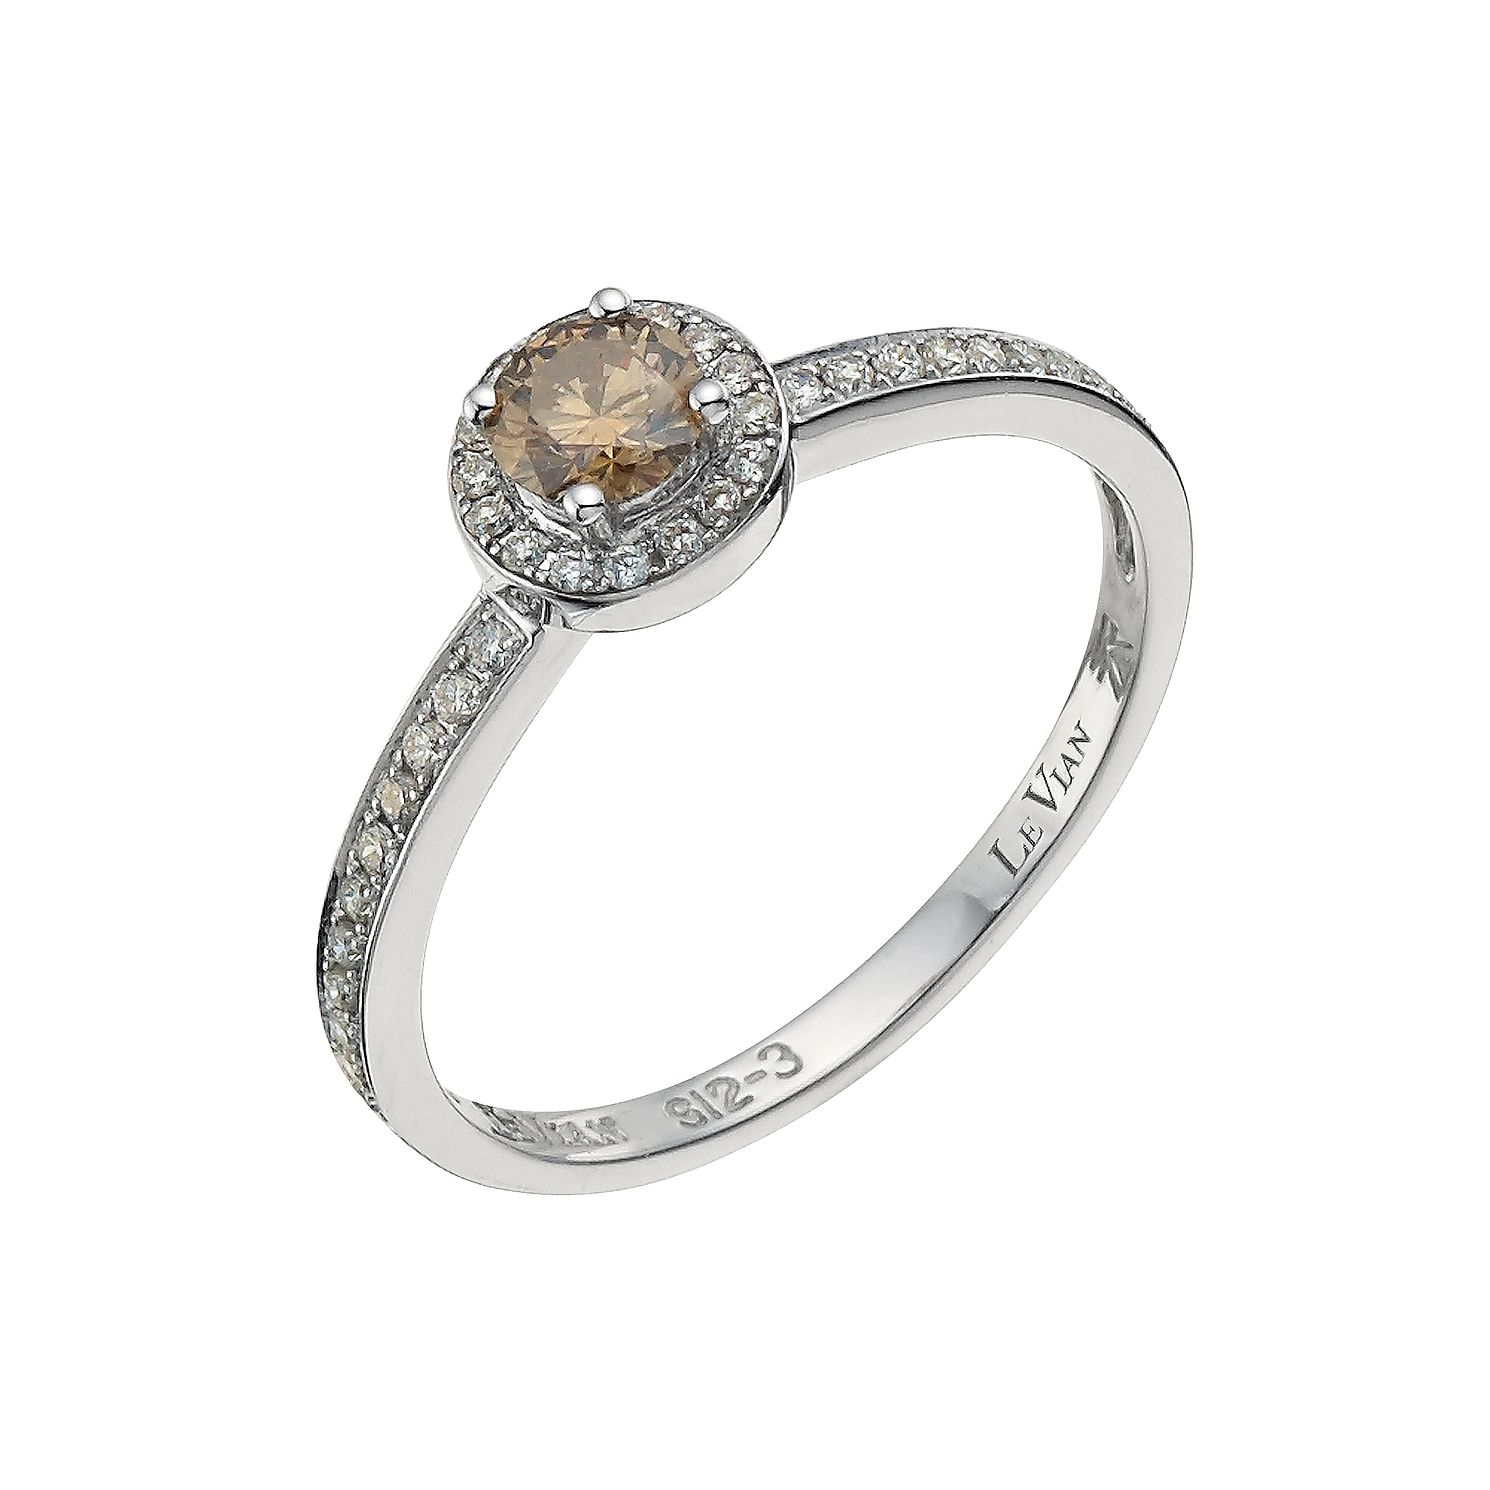 Le Vian 14ct Gold 0.40ct Vanilla & Chocolate Diamond Ring - Product number 8788812